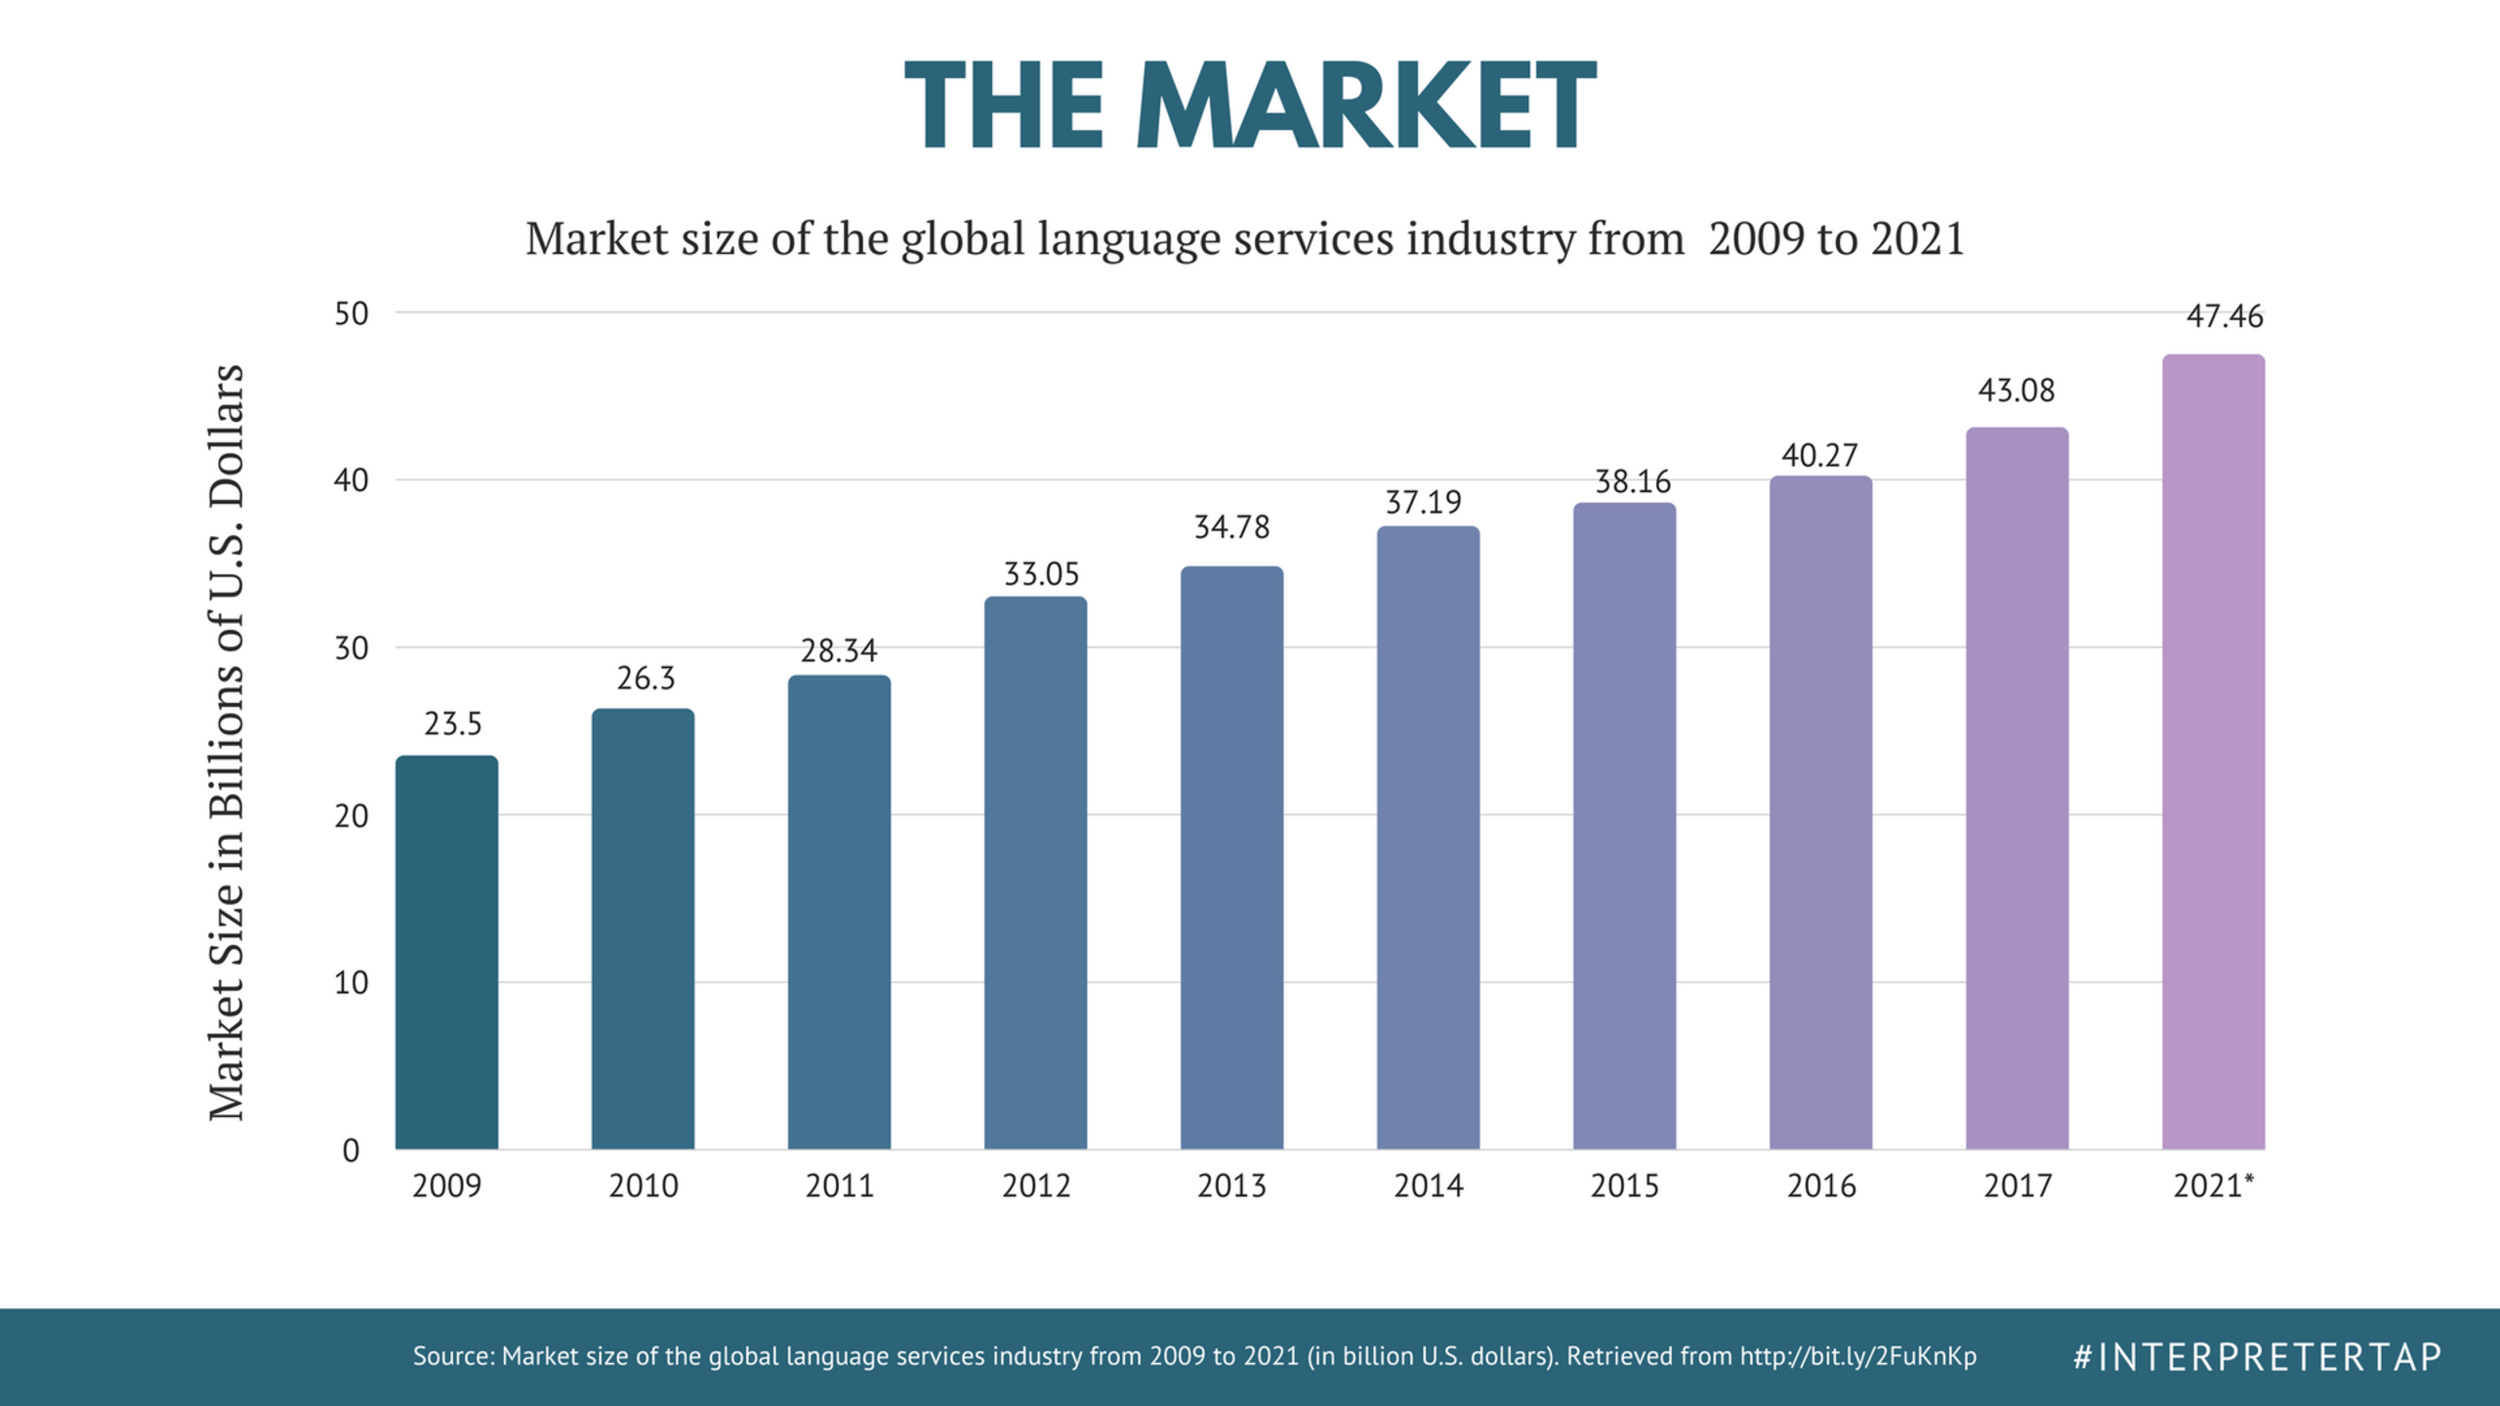 Source:  Camarota, S. A., & Zeigler, K. (2017, October 24). Nearly 65 Million U.S. Residents Spoke a Foreign Language at Home in 2016. Retrieved from http://bit.ly/Cis6_5mUS